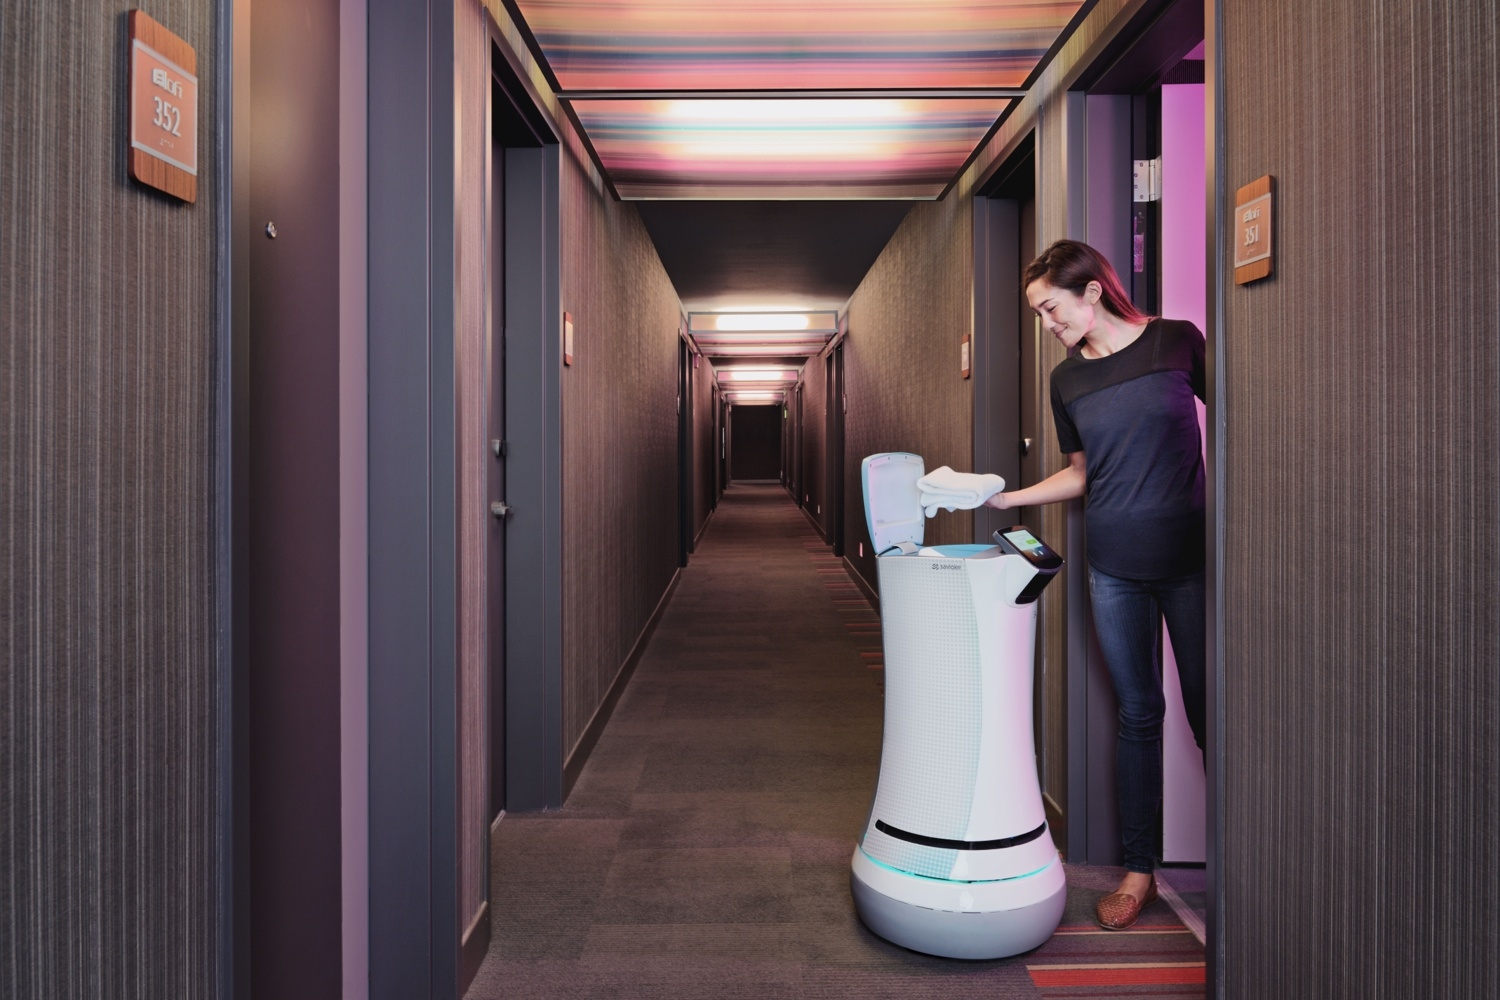 Take A Look At The World's First Robot Butler